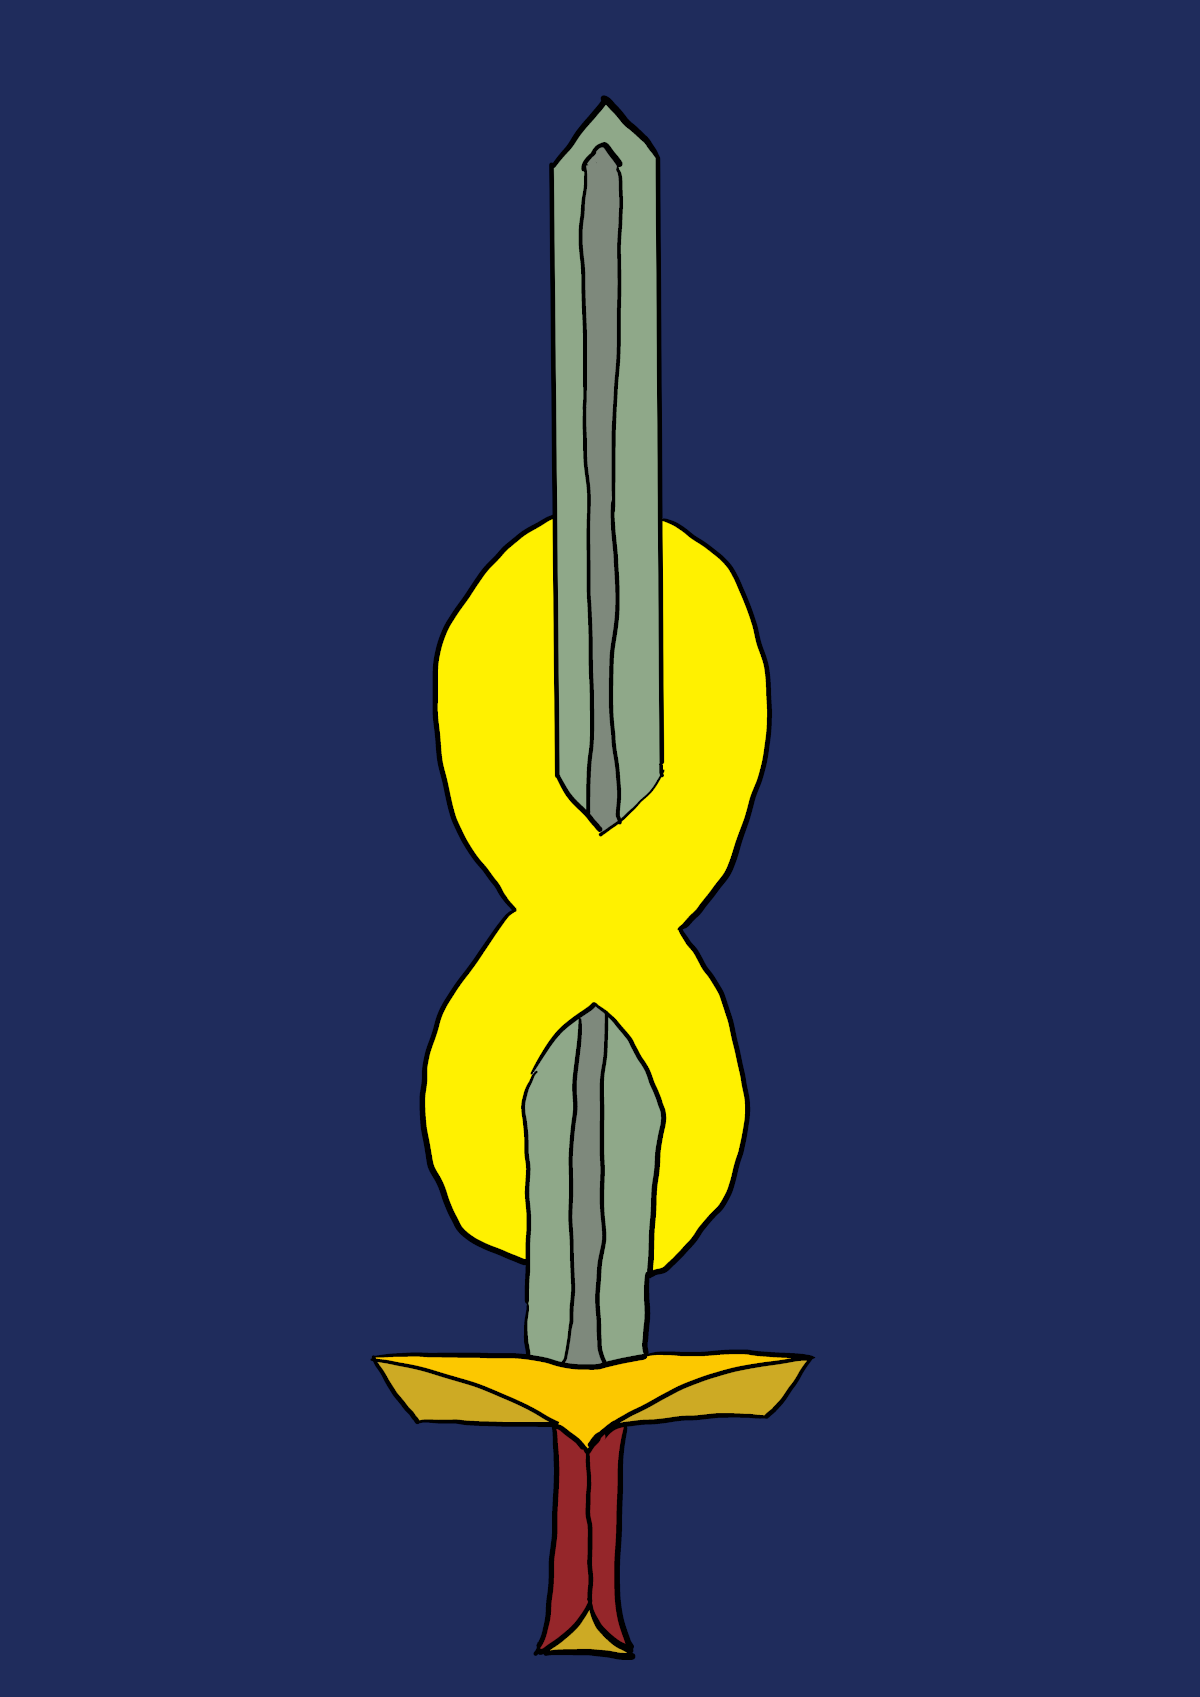 A sword pierces infinity. The symbol of the Pan-Galactic Federation.